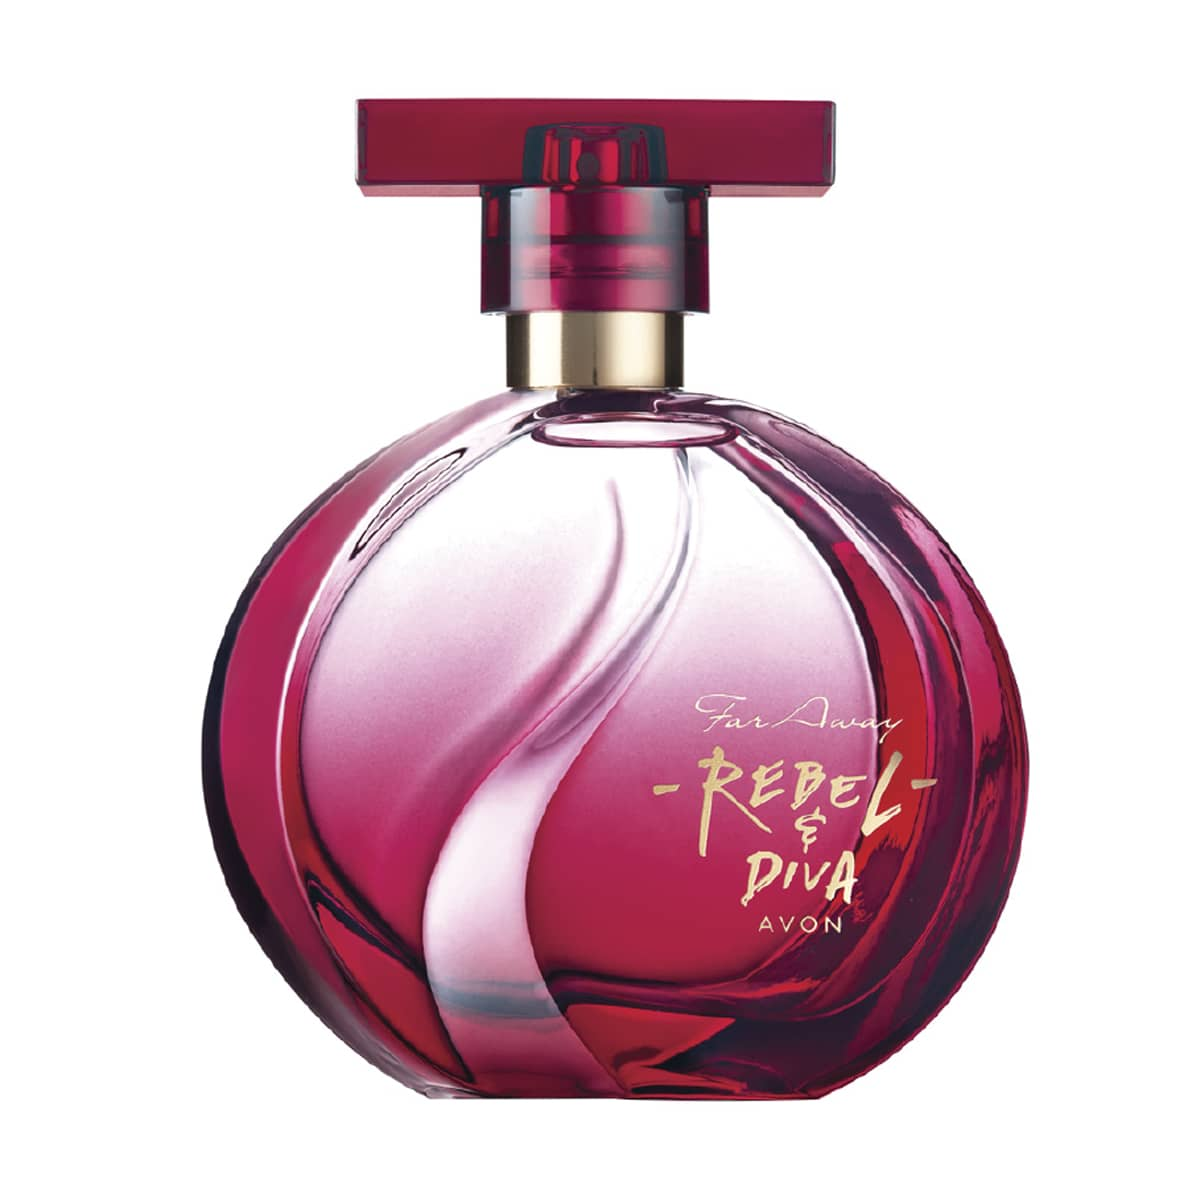 Far Away Rebel & Diva Eau de Parfüm 1328329 50ml